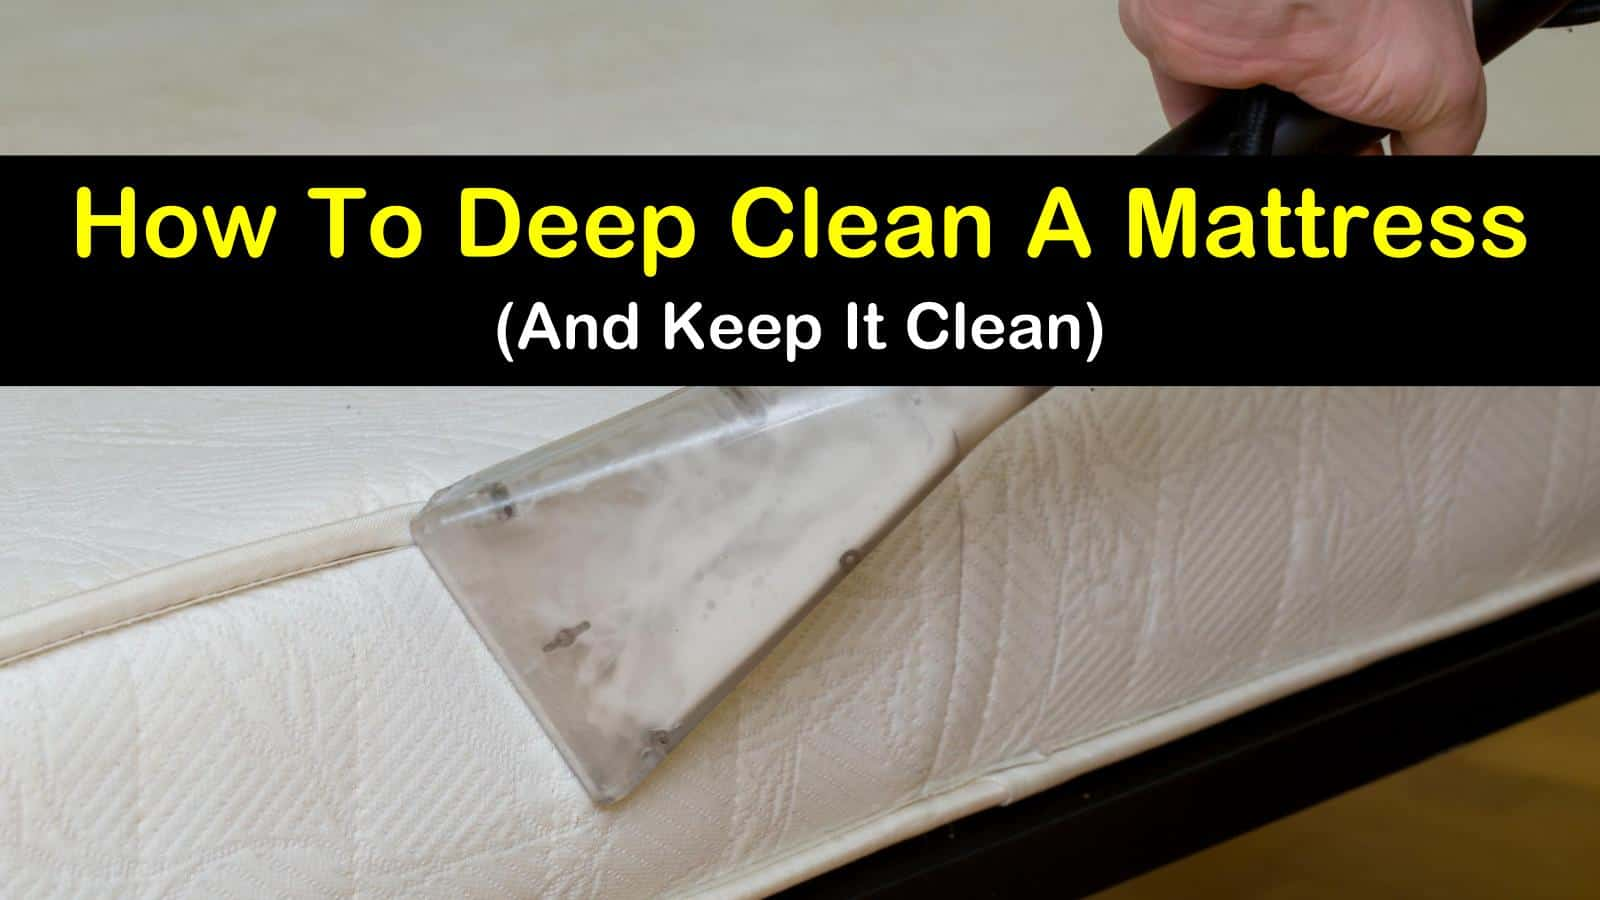 3 Simple Ways To Deep Clean A Mattress